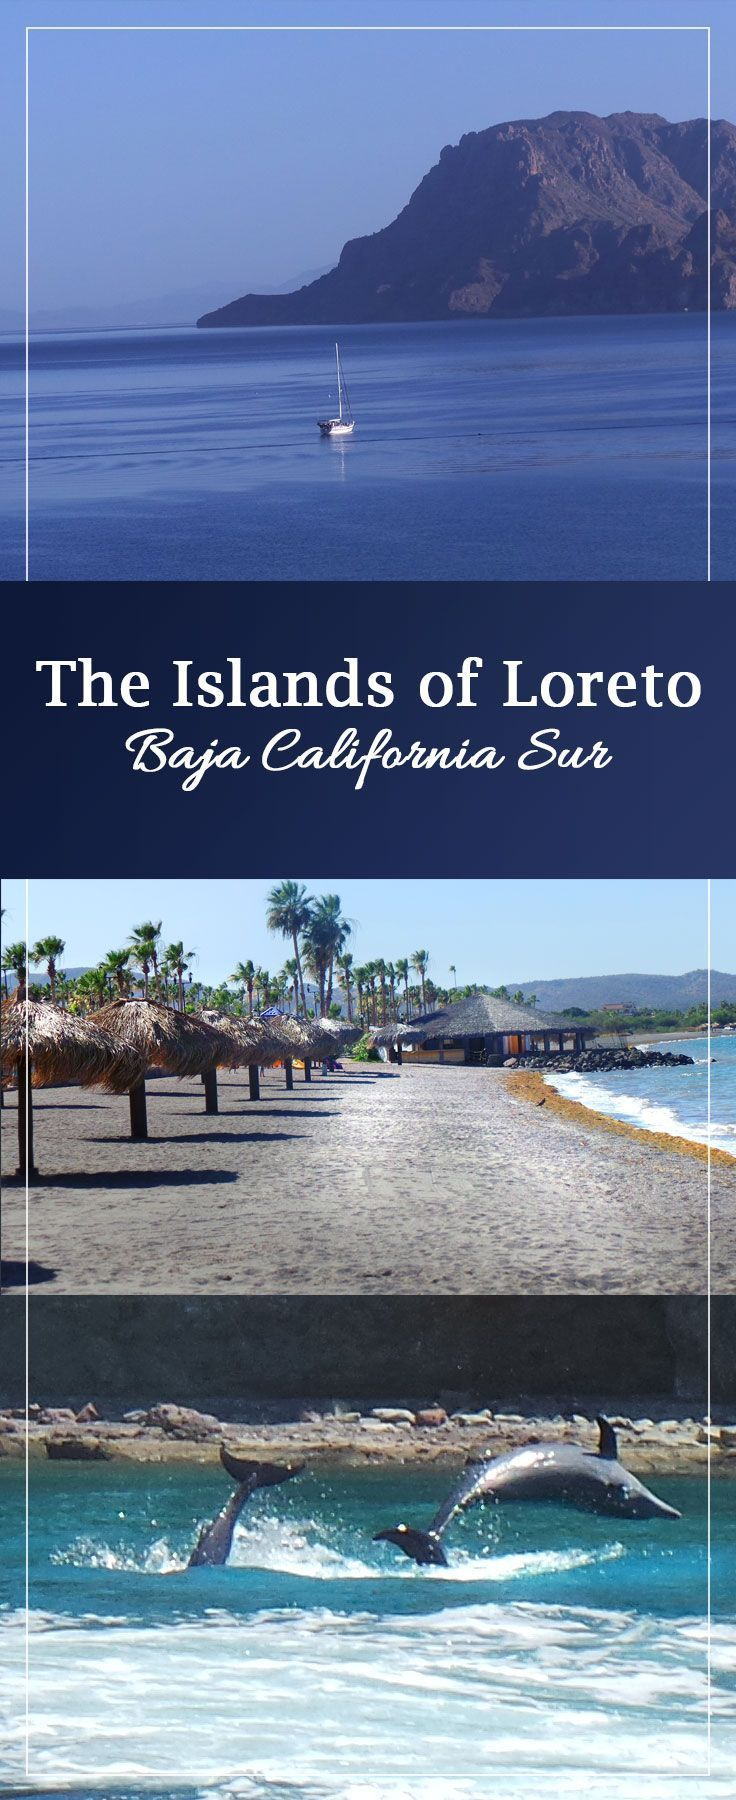 Islands of Loreto in Baja California Mexico is a beautiful vacation for families and adults.  Beautiful beaches and private islands, see dolphins and snorkel! Delicious food and a laid back atmosphere. Add it to your Mexico travel bucket list this year!